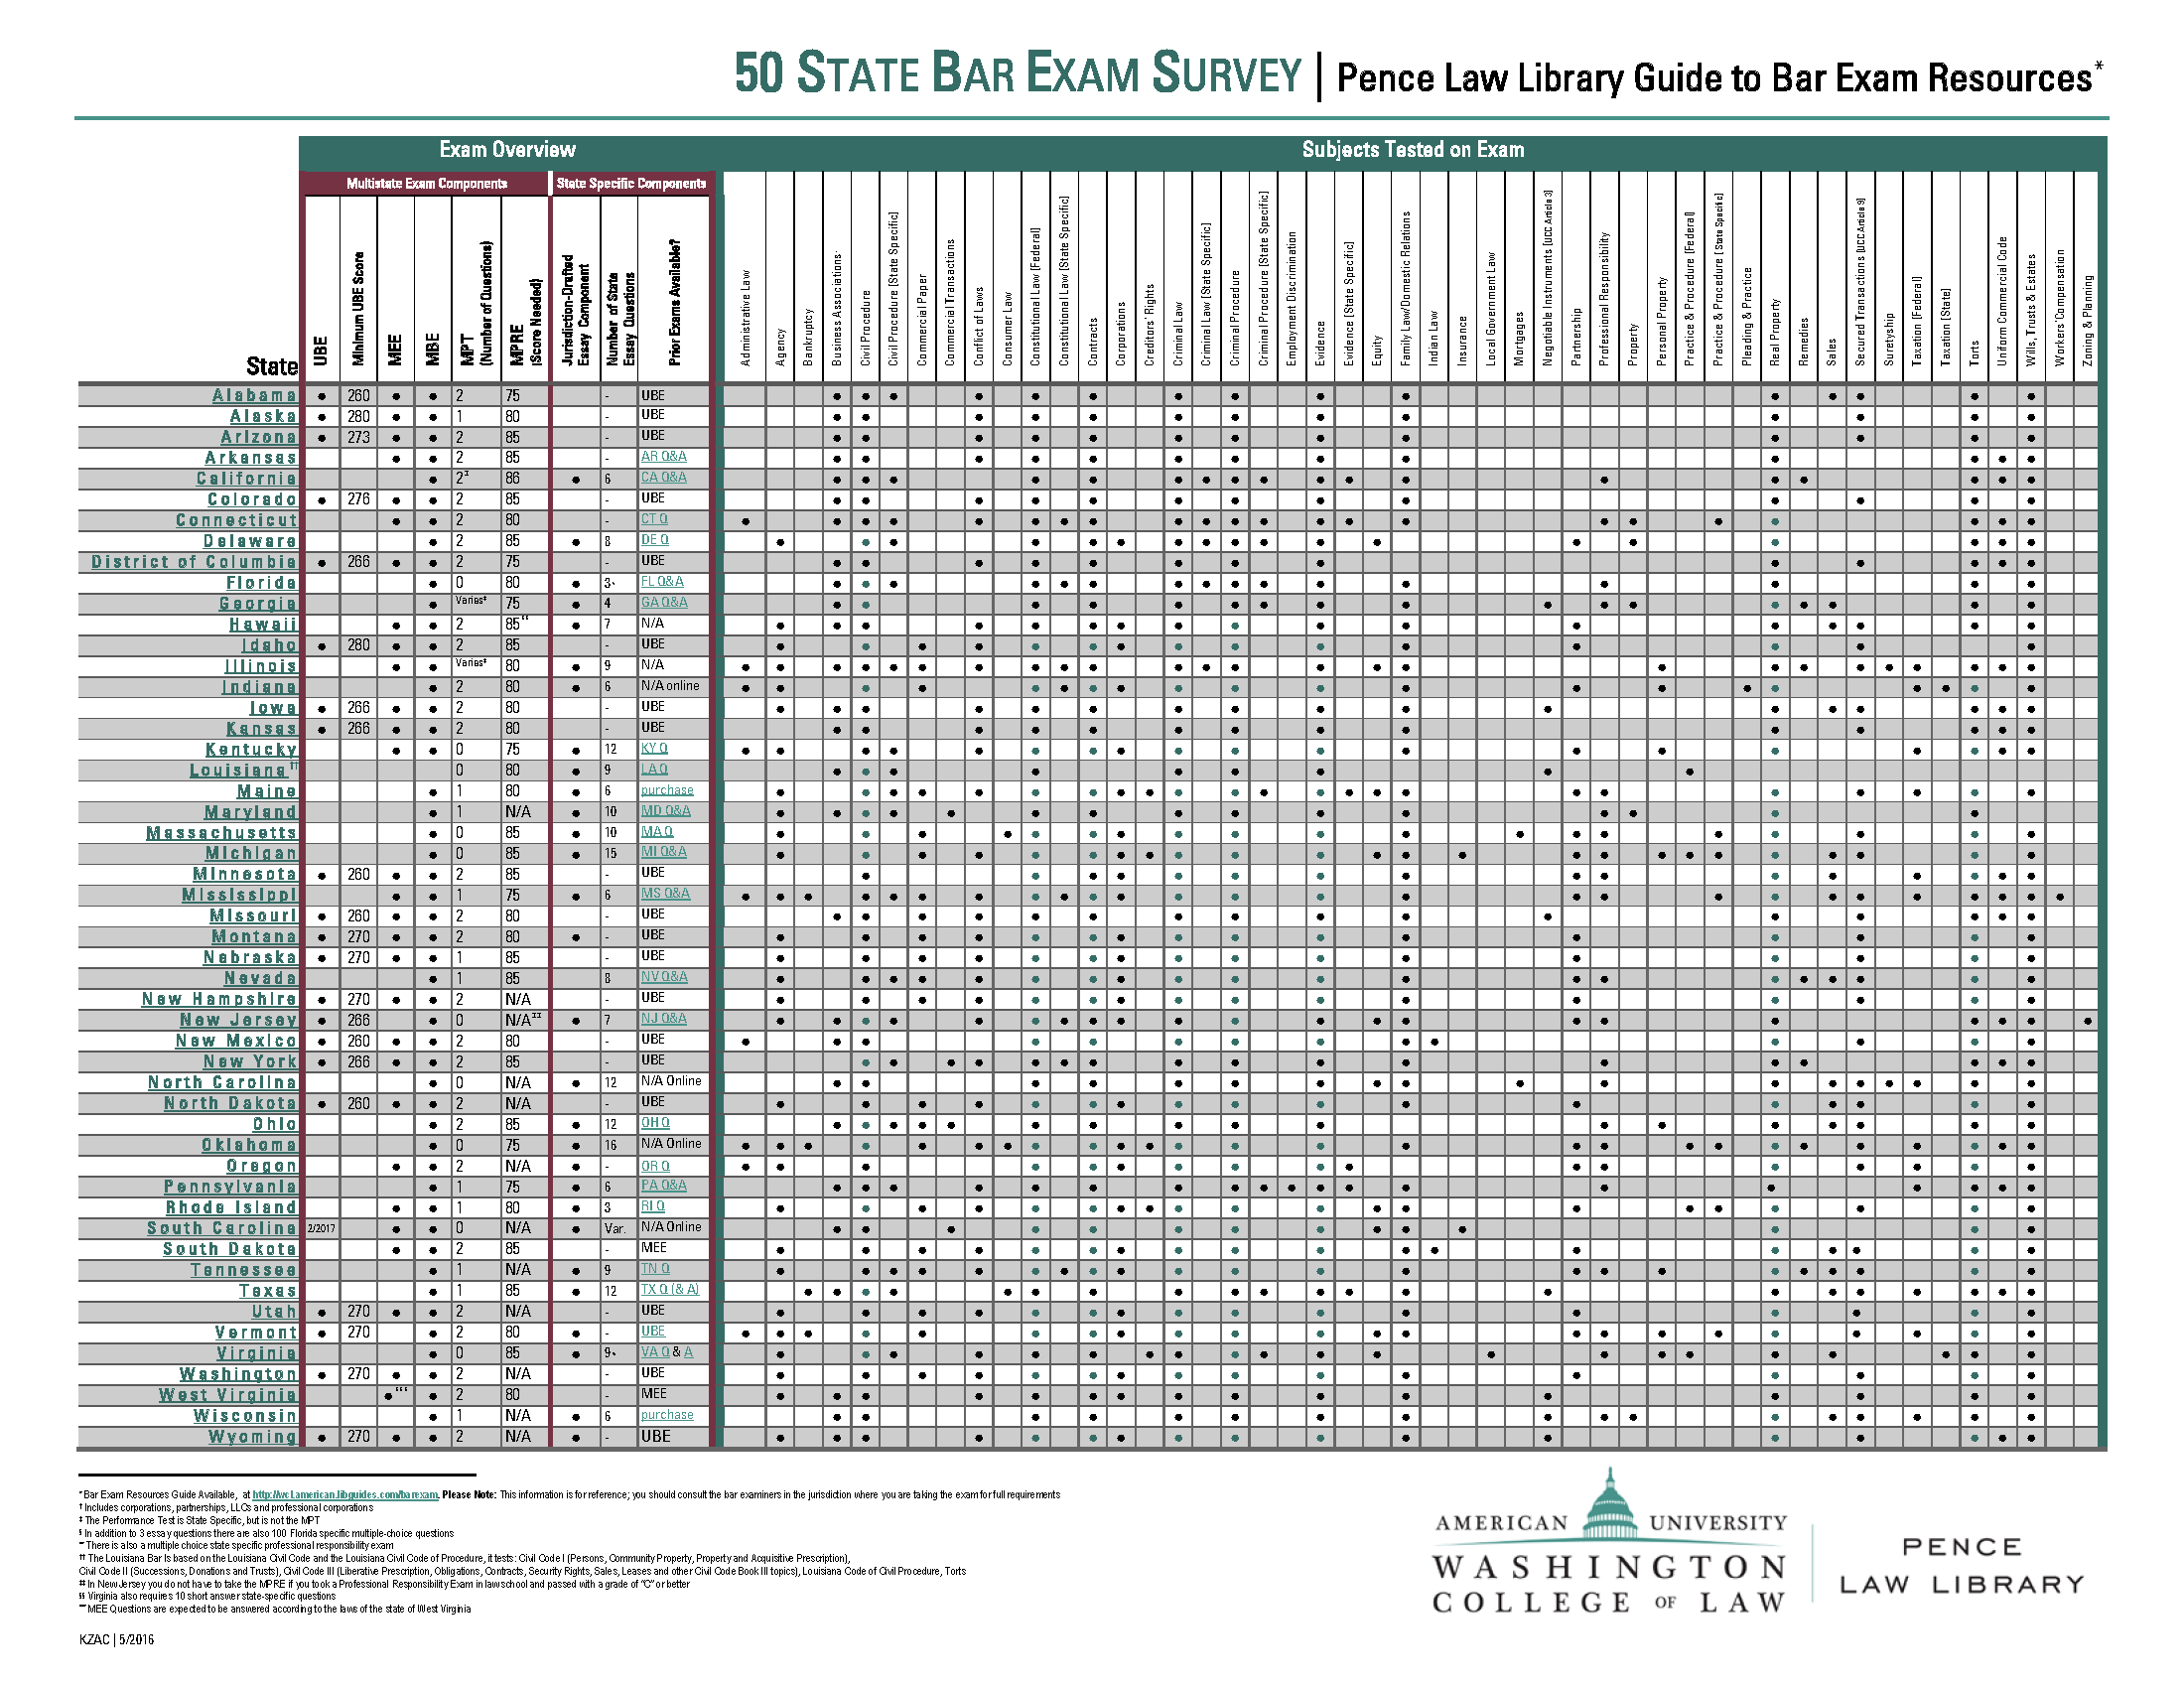 July 2017 Bar Exam Results Release Dates by State